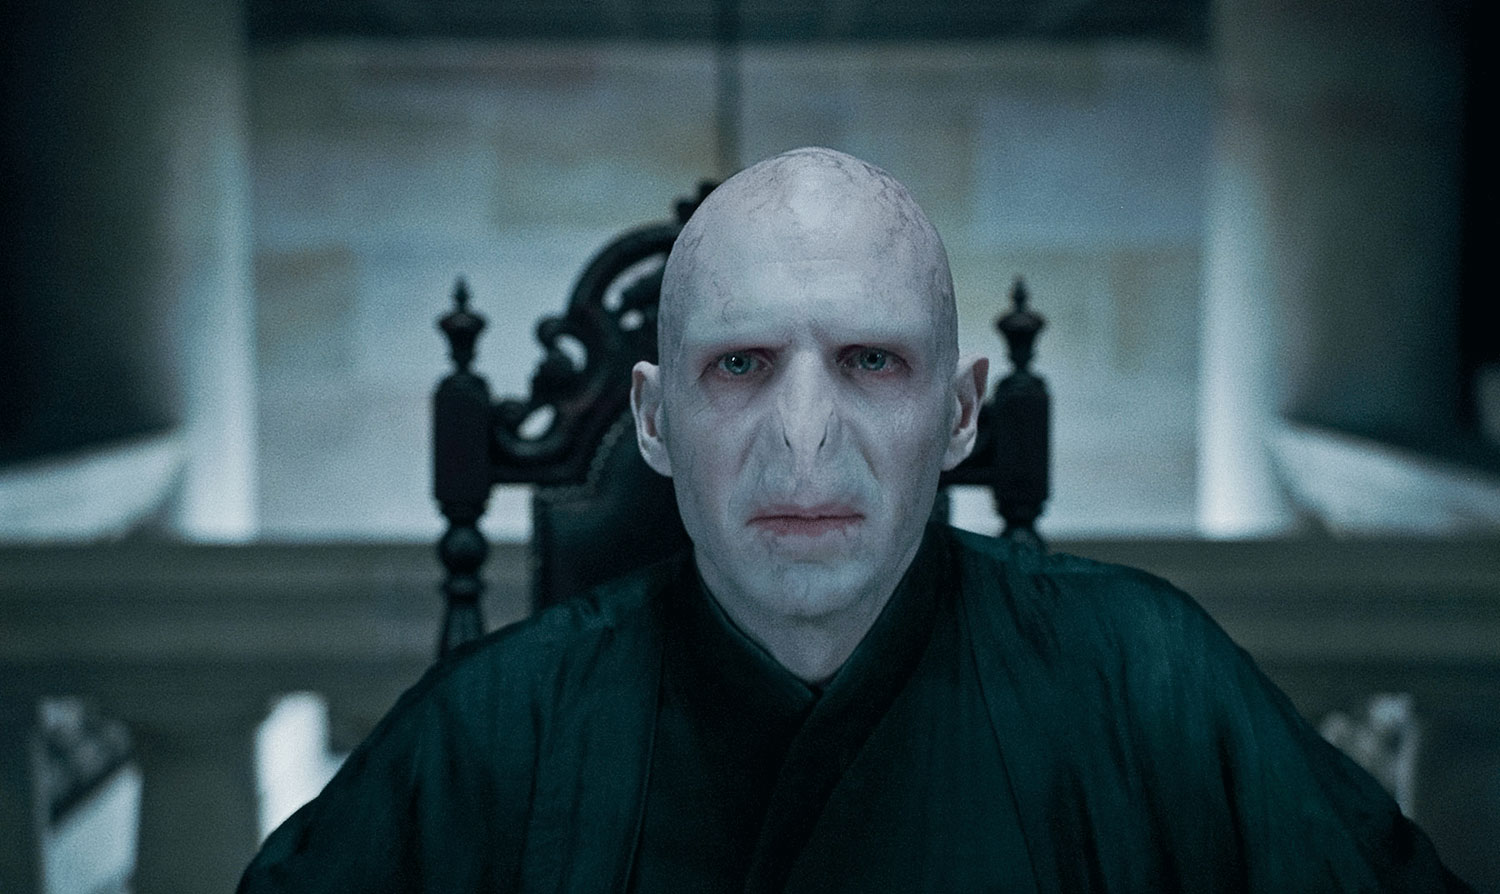 lord voldemort was played by five different actors celebrity lord voldemort was played by five different actors celebrity gossip and movie news